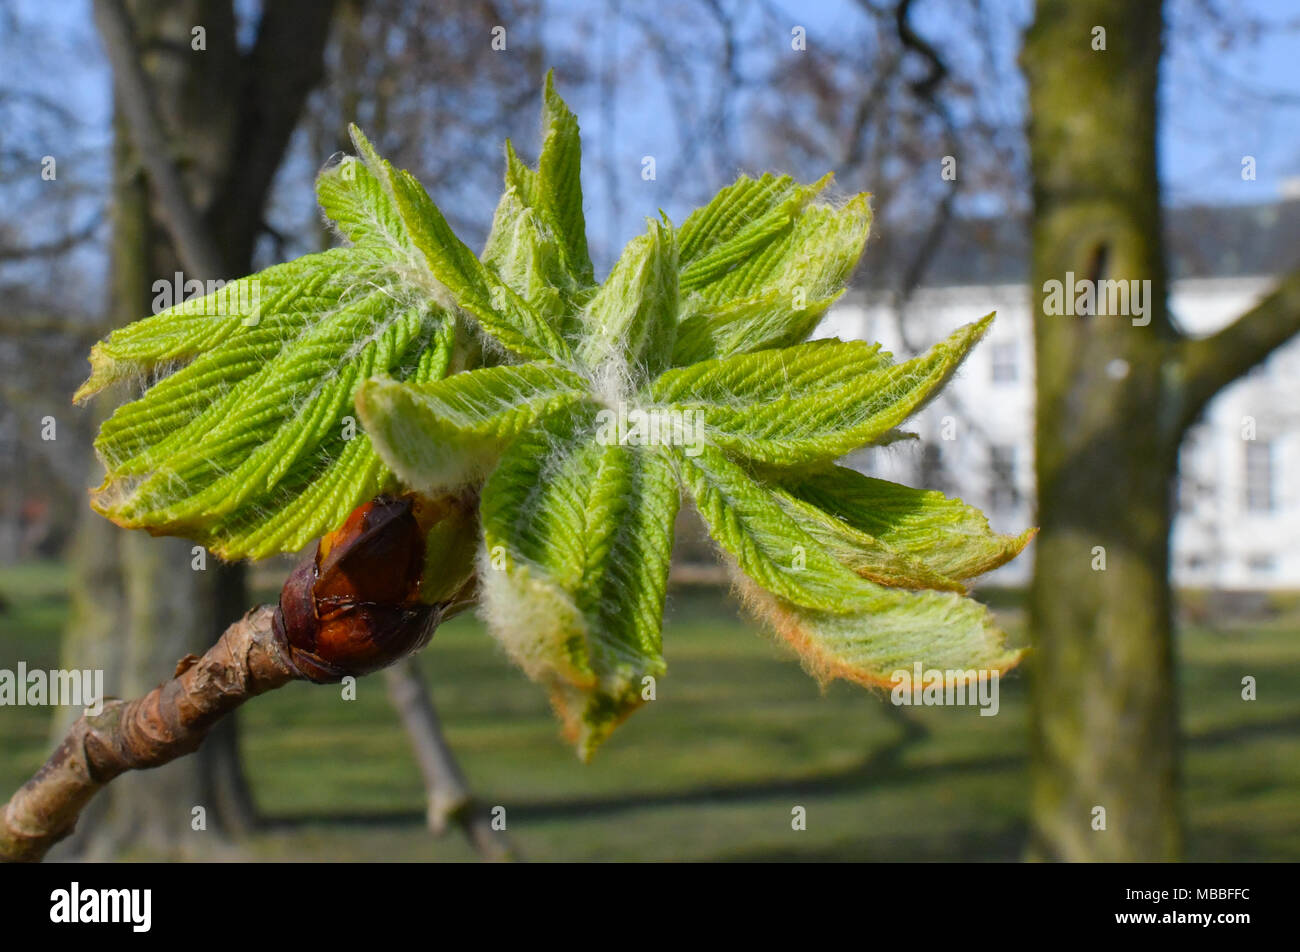 10 April 2018, Germany, Neuhardenberg: The light green of a chestnut bud shines bright in the palace park. Today is going to be a warm spring day with 20 degrees according to meteorologists. Photo: Patrick Pleul/dpa-Zentralbild/dpa Stock Photo